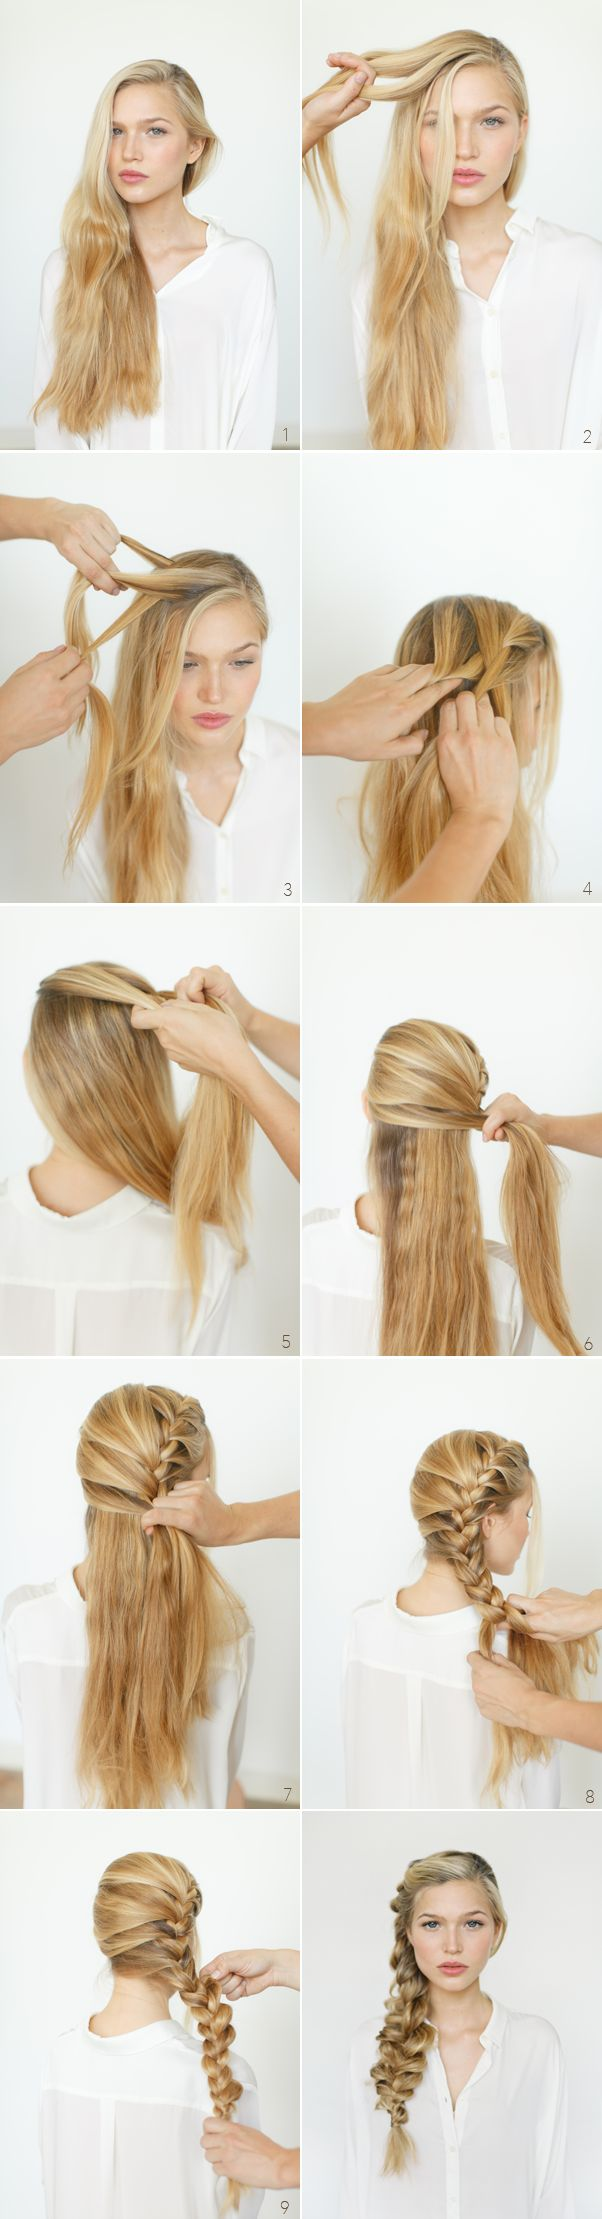 #messy braid hair tutorial